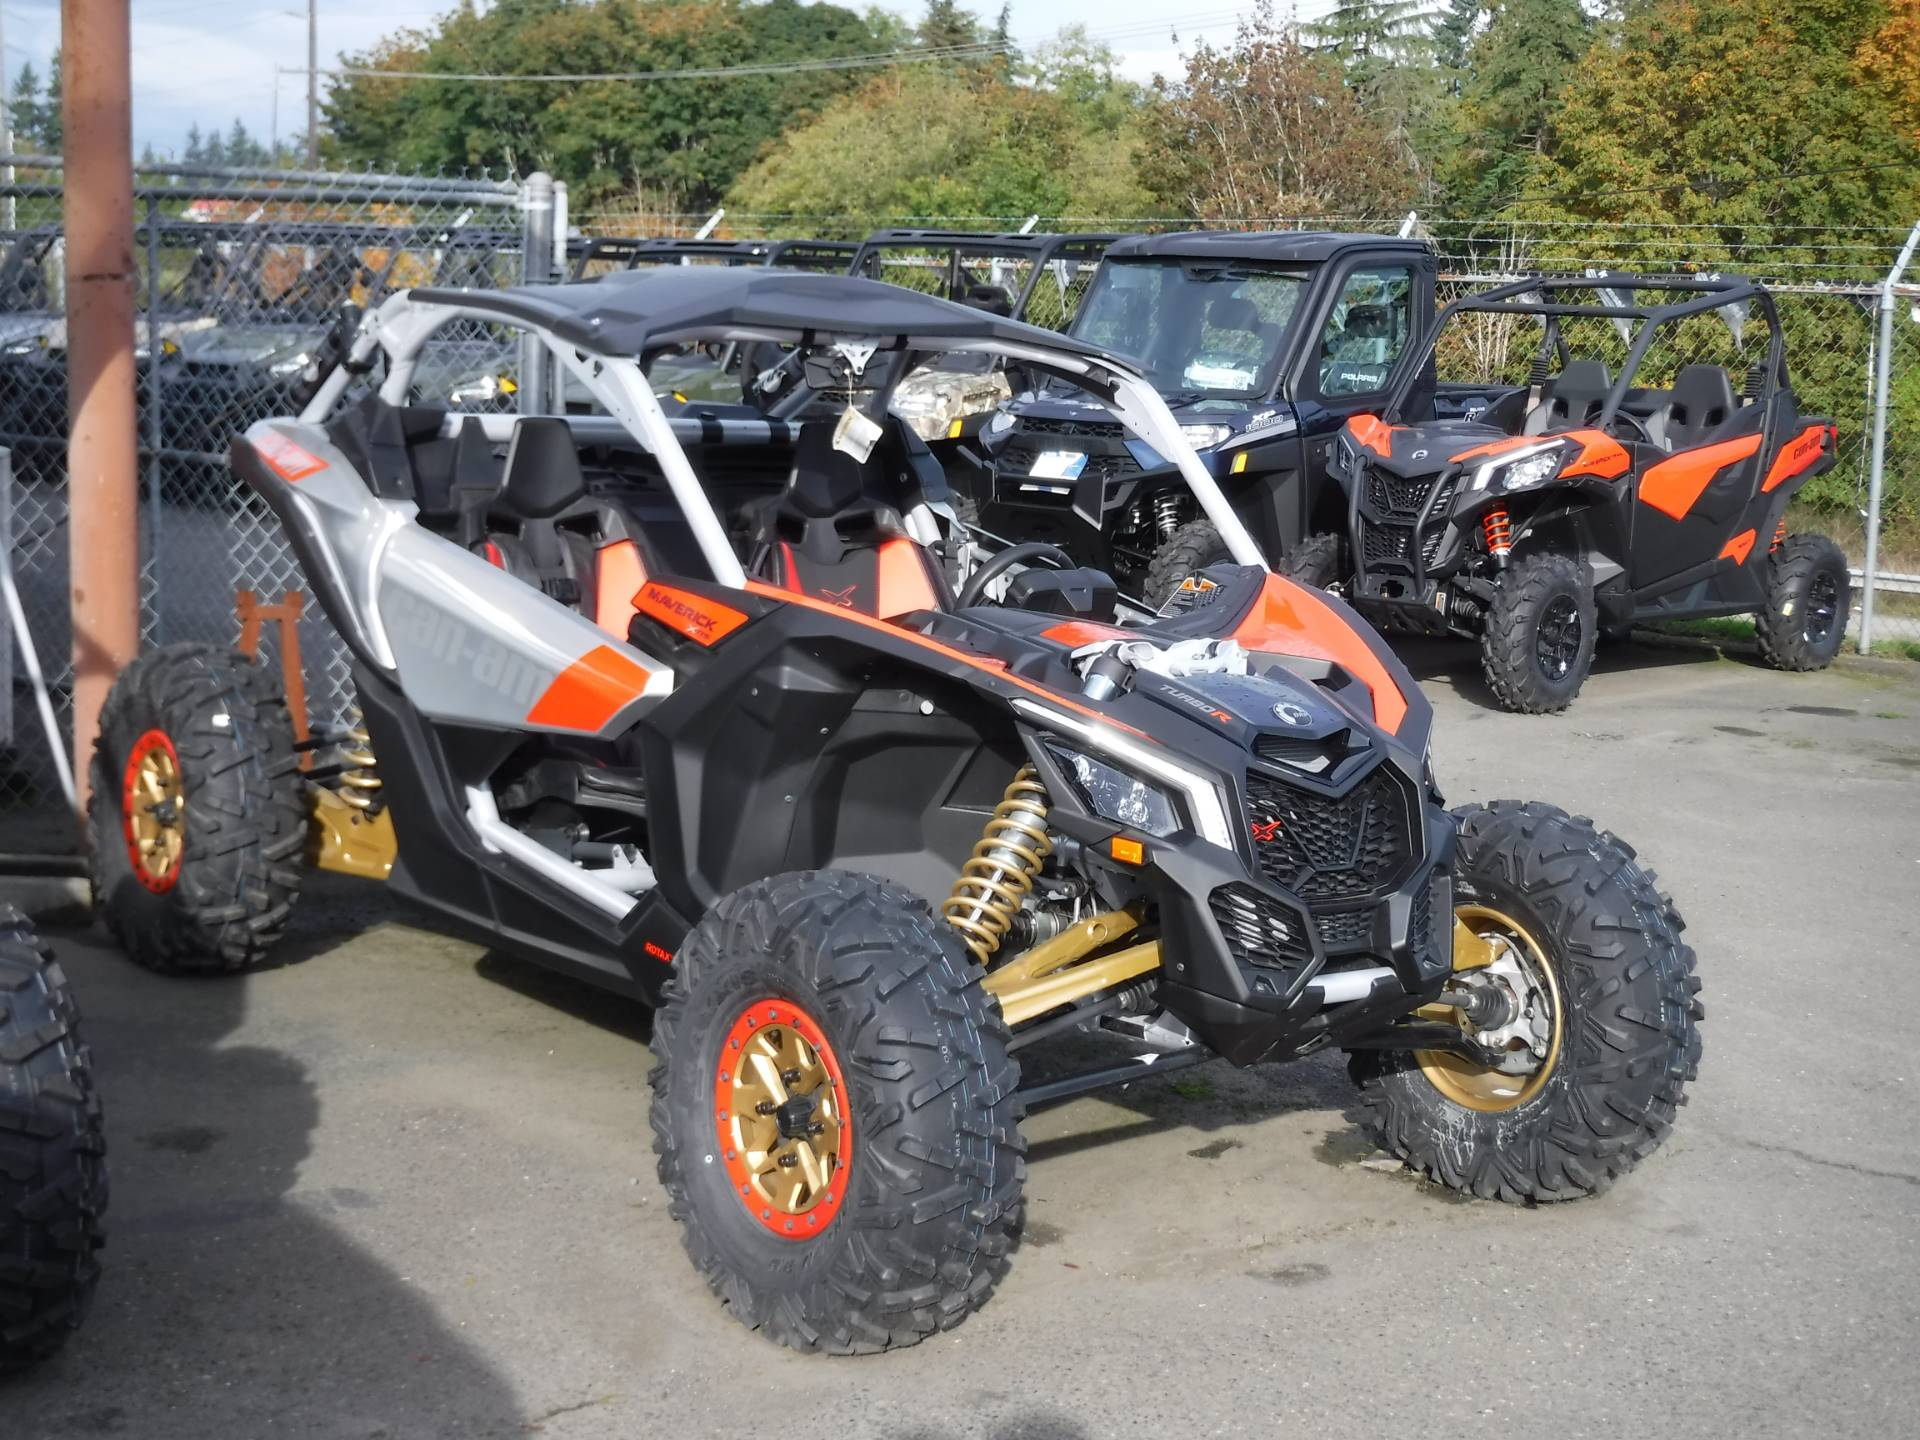 2019 Can-Am Maverick X3 X rs Turbo R in Port Angeles, Washington - Photo 5